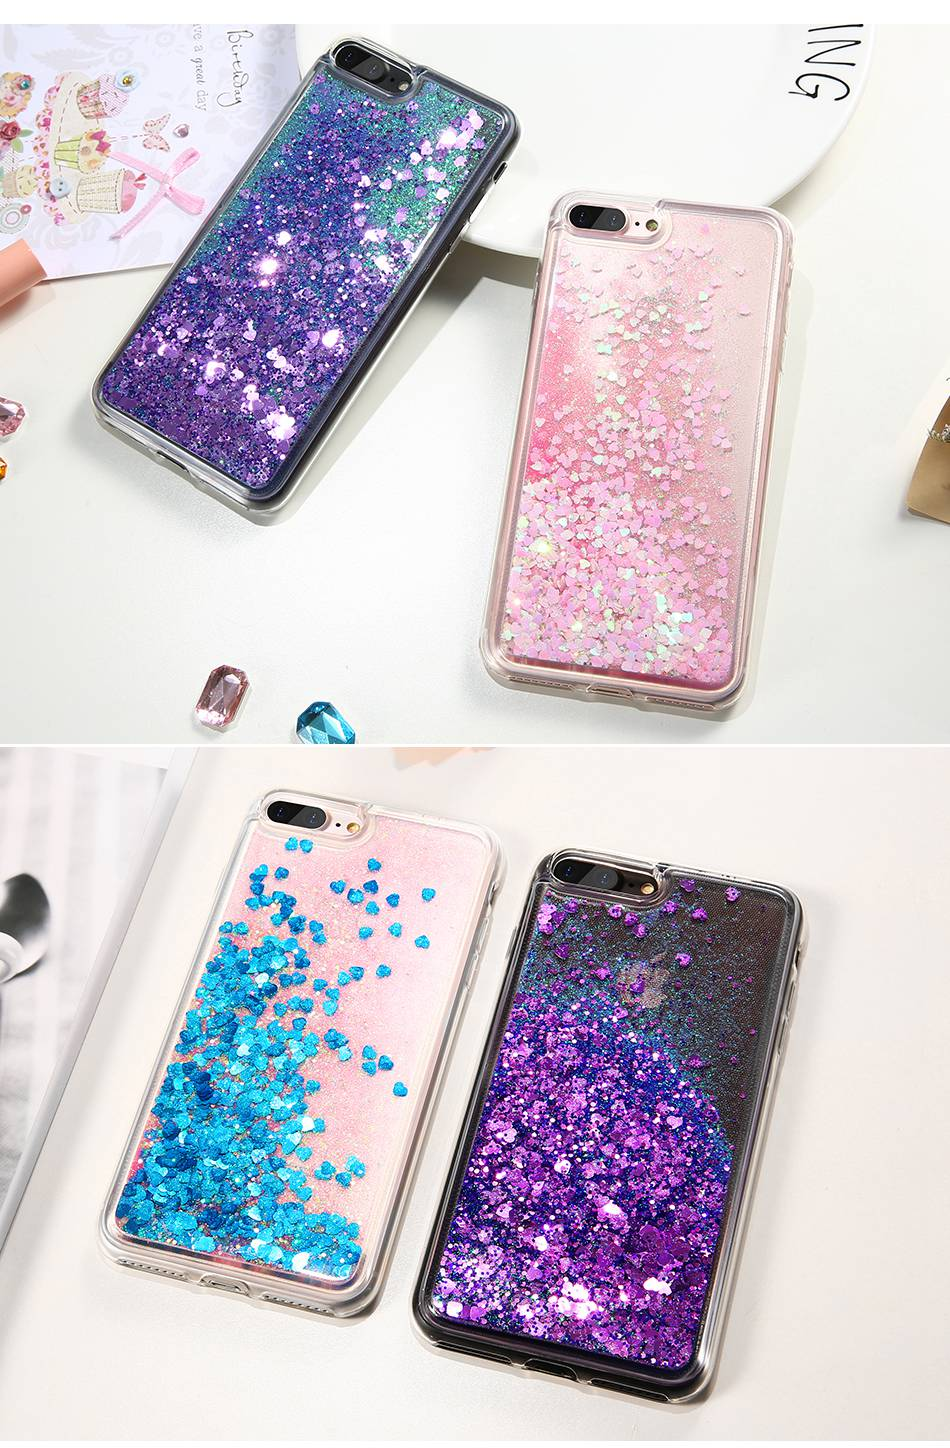 Glitter Quicksand Cover For iPhone 7 Plus For iPhone 6 6S Plus 5 5S SE Sequin Silicon Phone Cases (3)